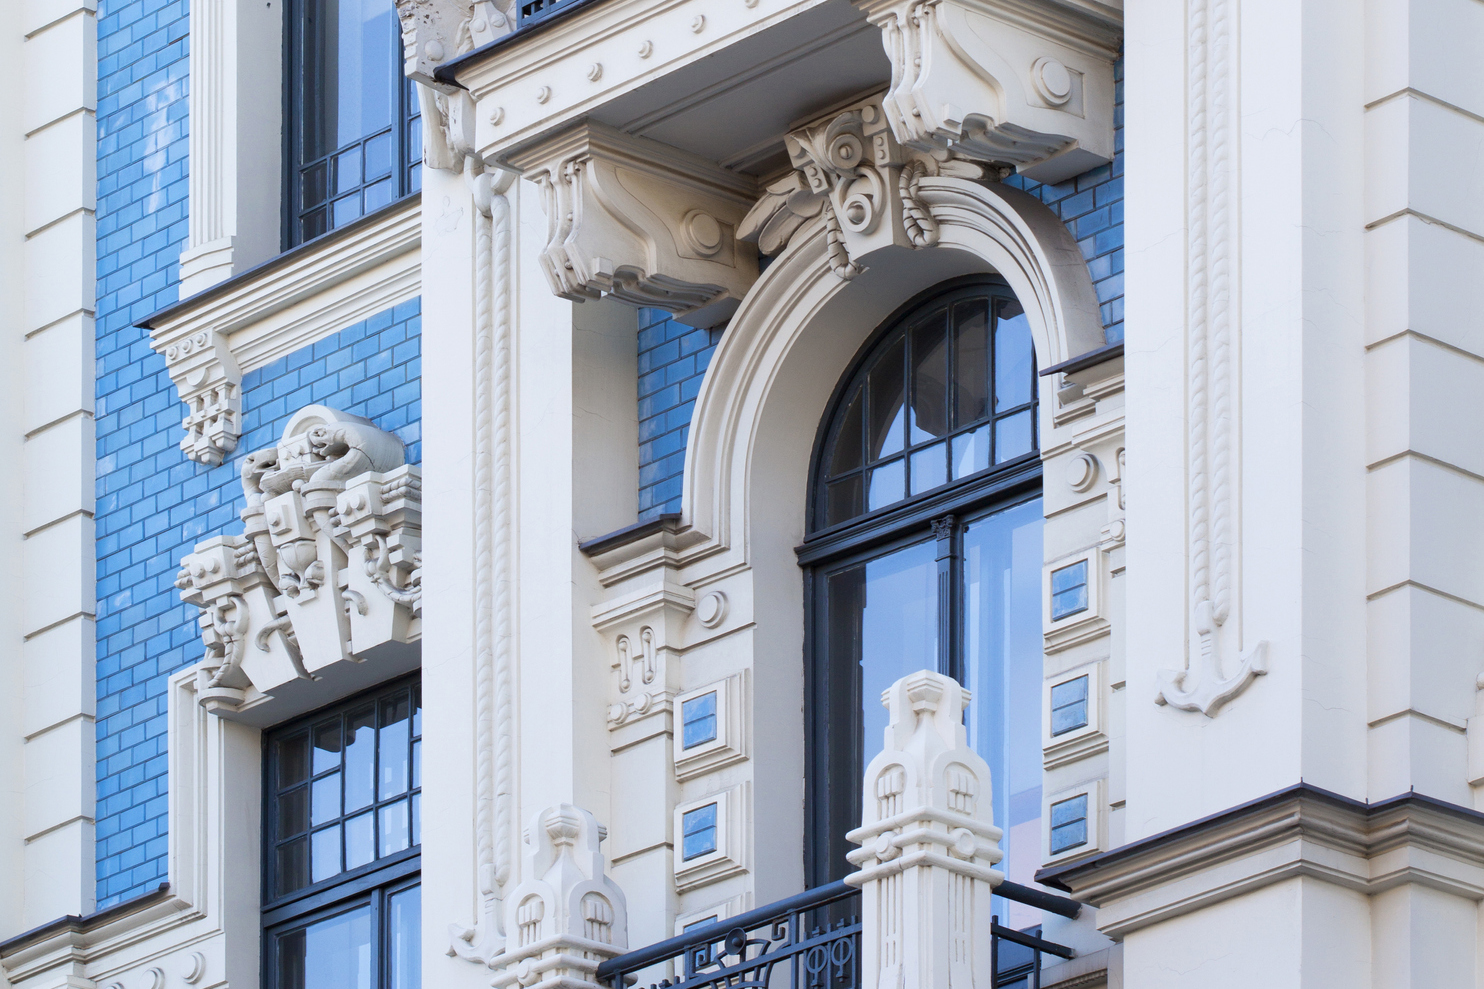 Design Elements of the Building in Art Nouveau Style in Riga, Latvia